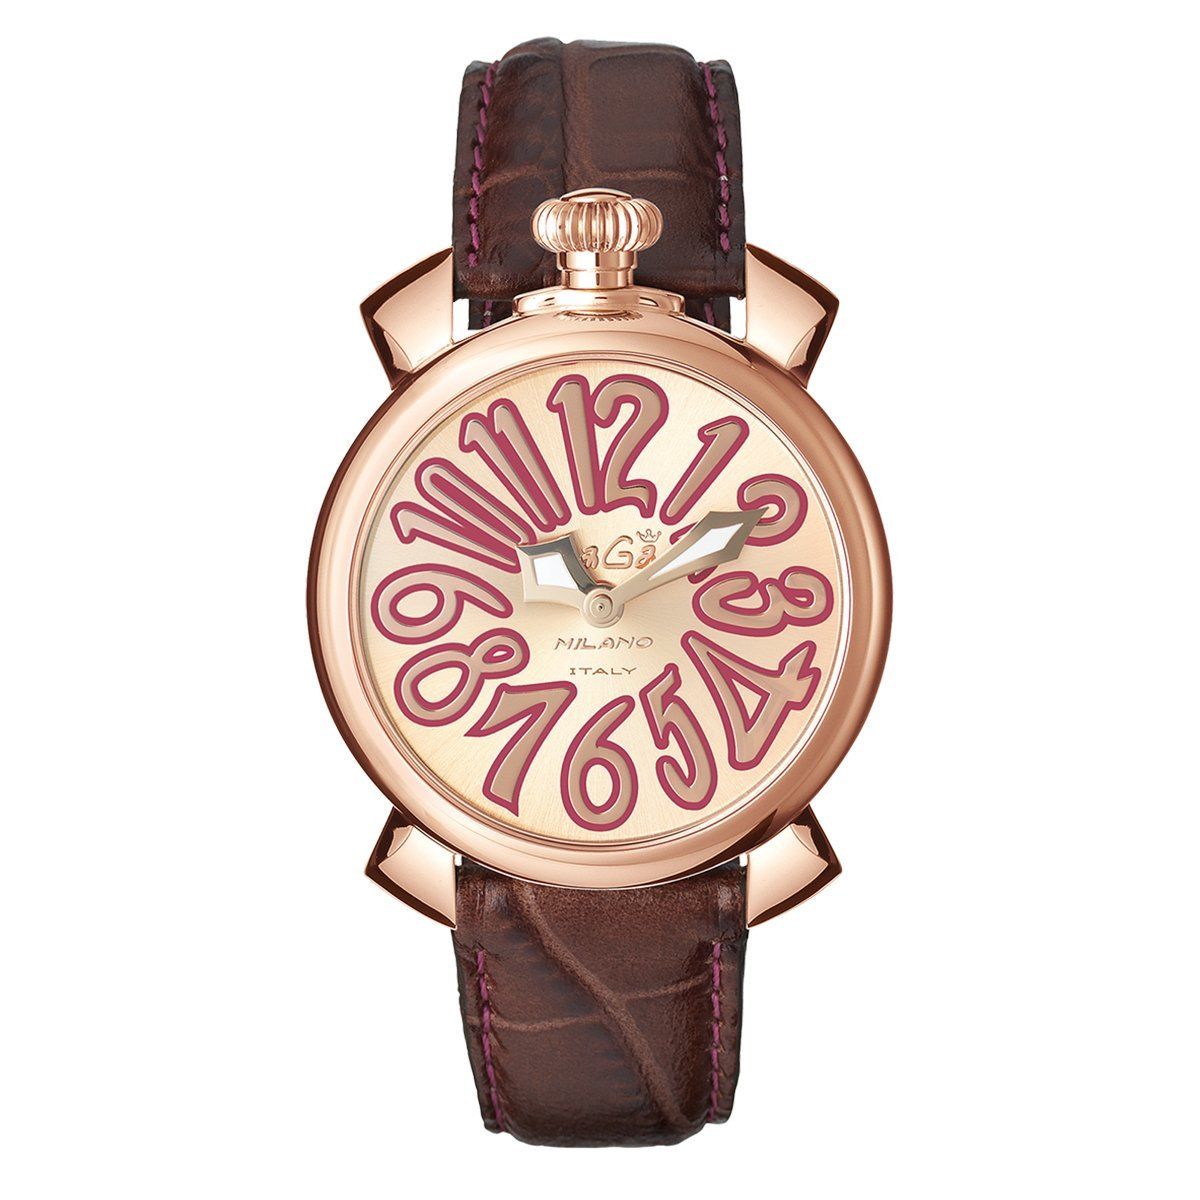 GaGà Milano Manuale 40MM Rose Gold Brown - Watches & Crystals